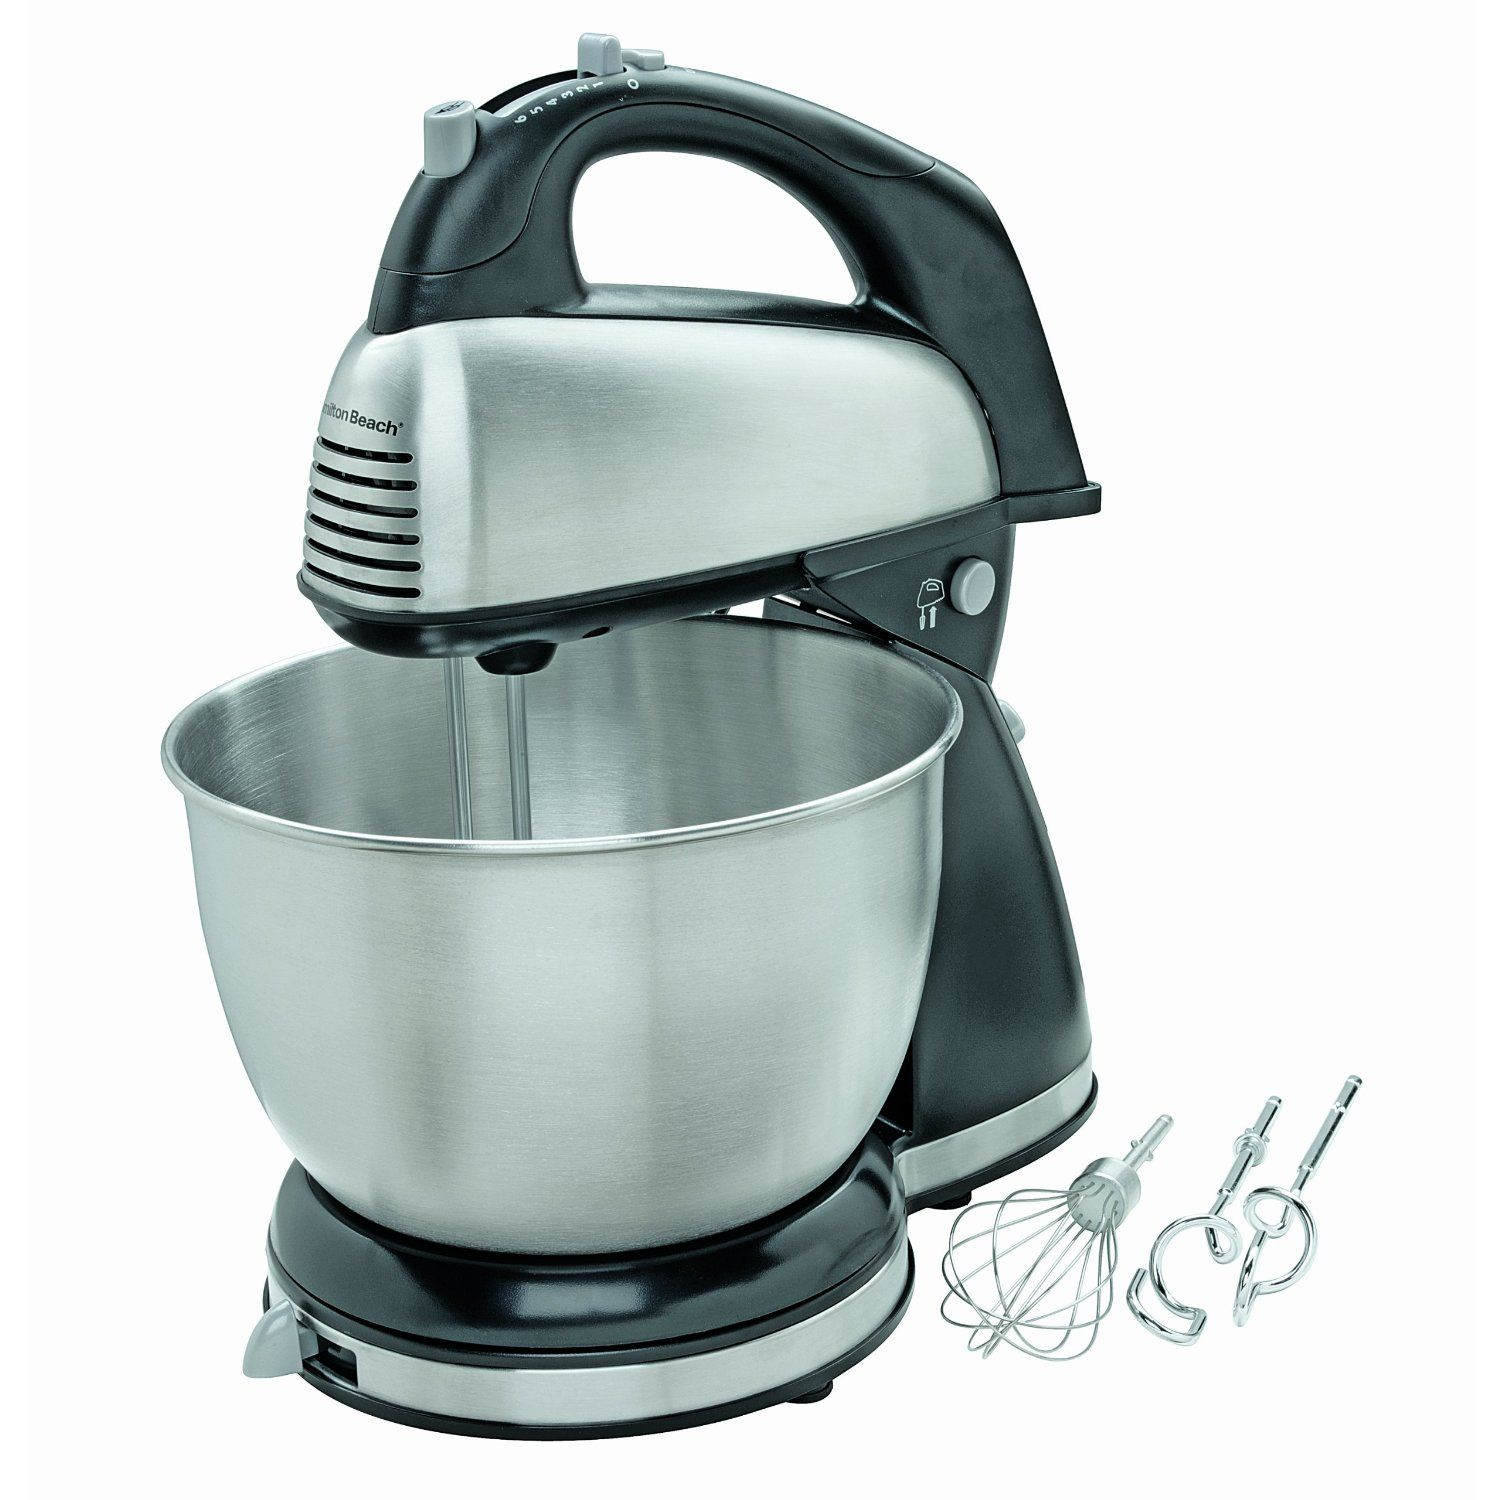 Hamilton Beach 64650 6-Speed Classic Stand Mixer, Stainless Steel ...